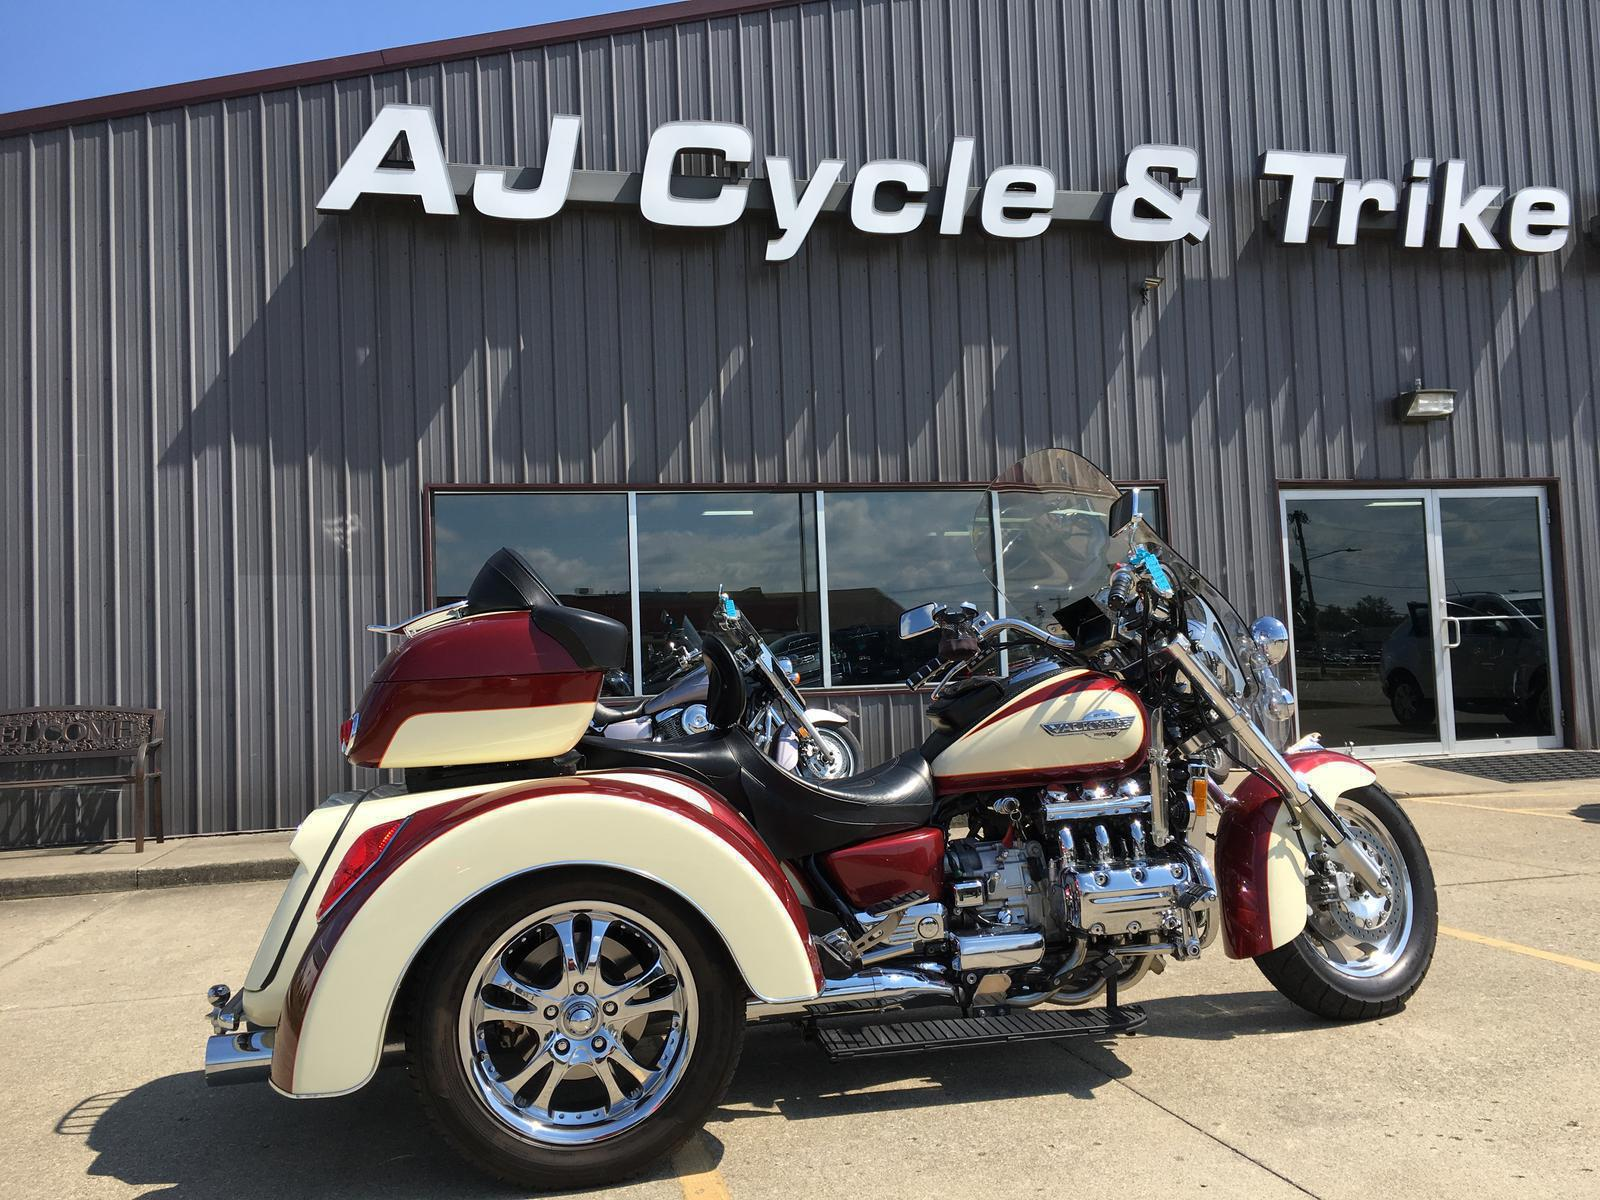 Inventory AJ Cycle & Trike Conversions Jasper, IN (812) 482-3366